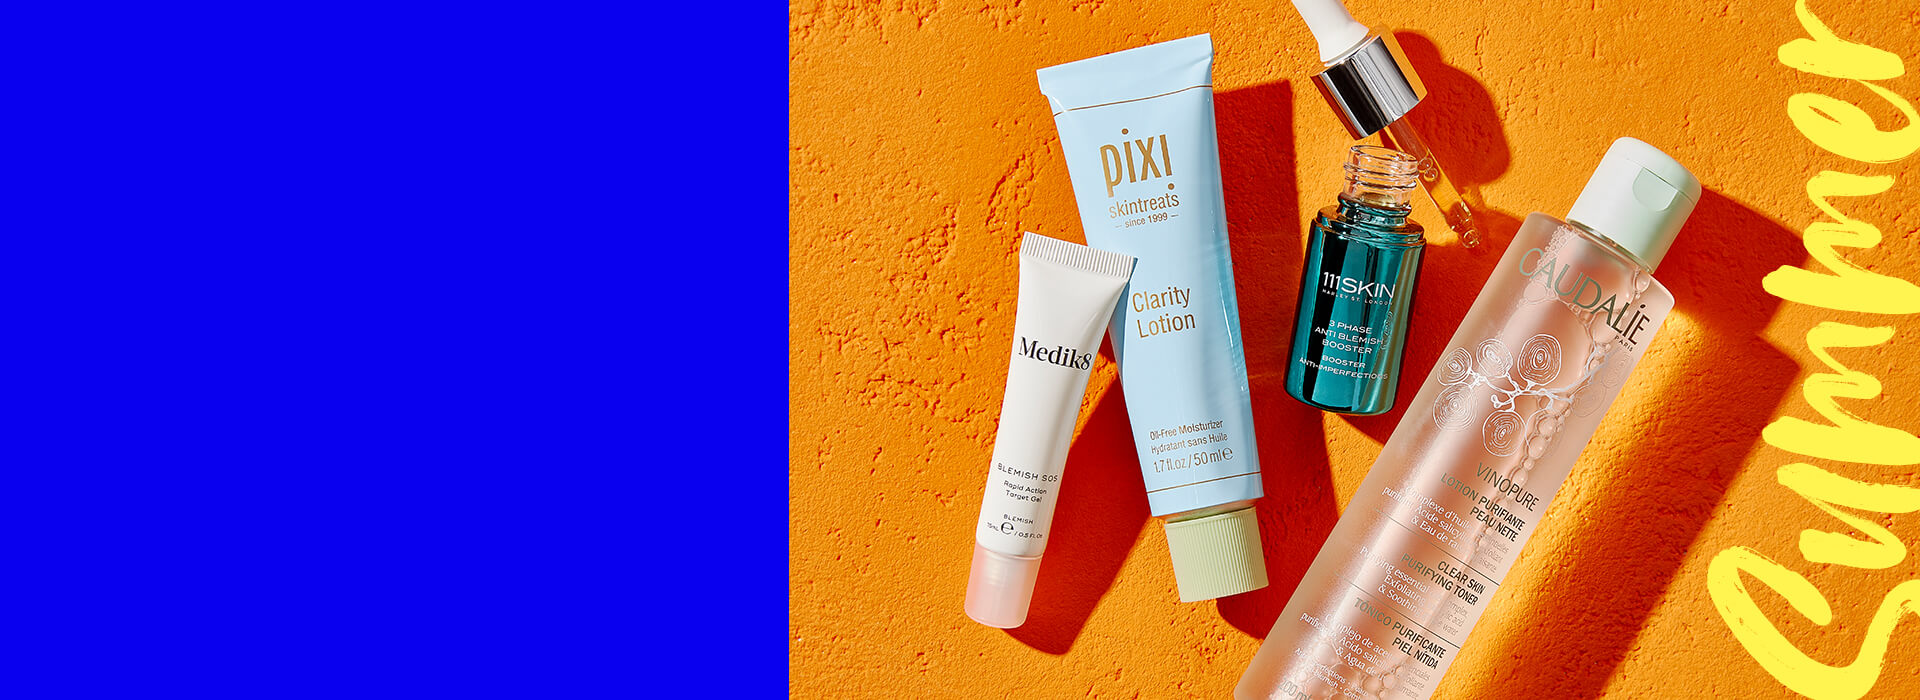 Salicylic Acid is the hero ingredient to refine and treat your complexion.